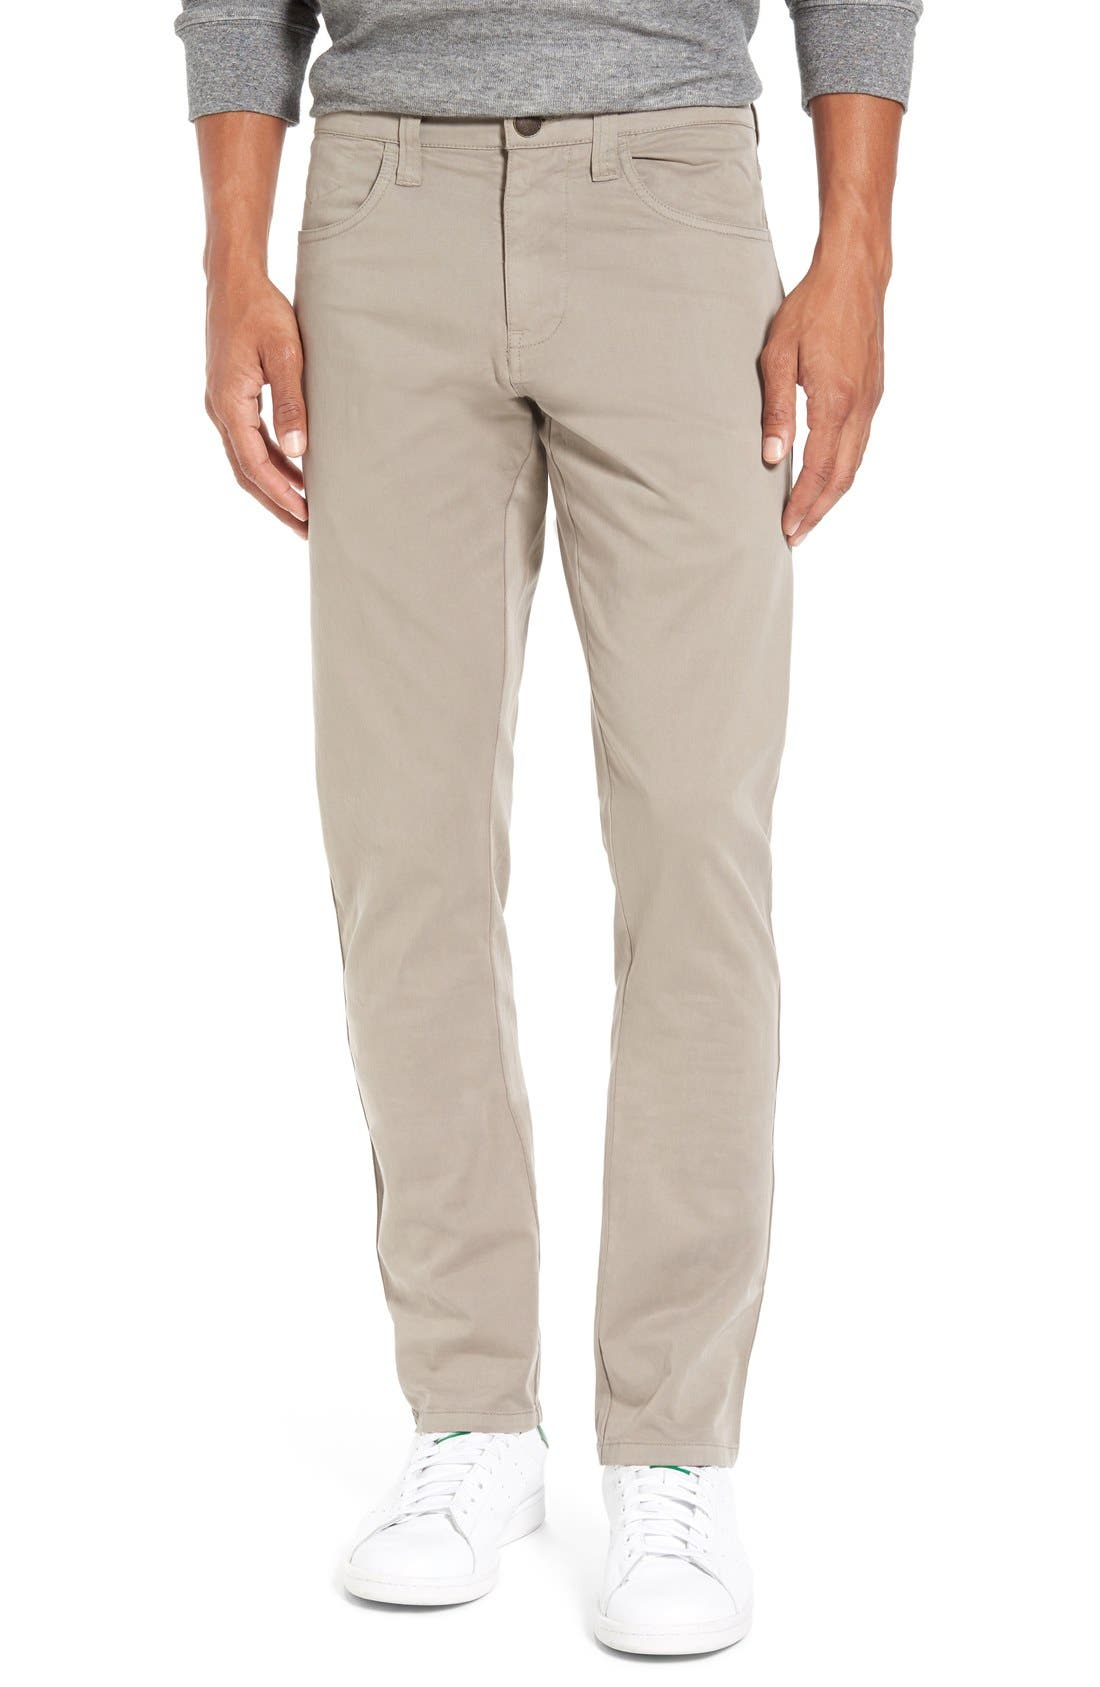 'Sunny' Slim Fit Stretch Twill Pants,                         Main,                         color, Dusty Silver